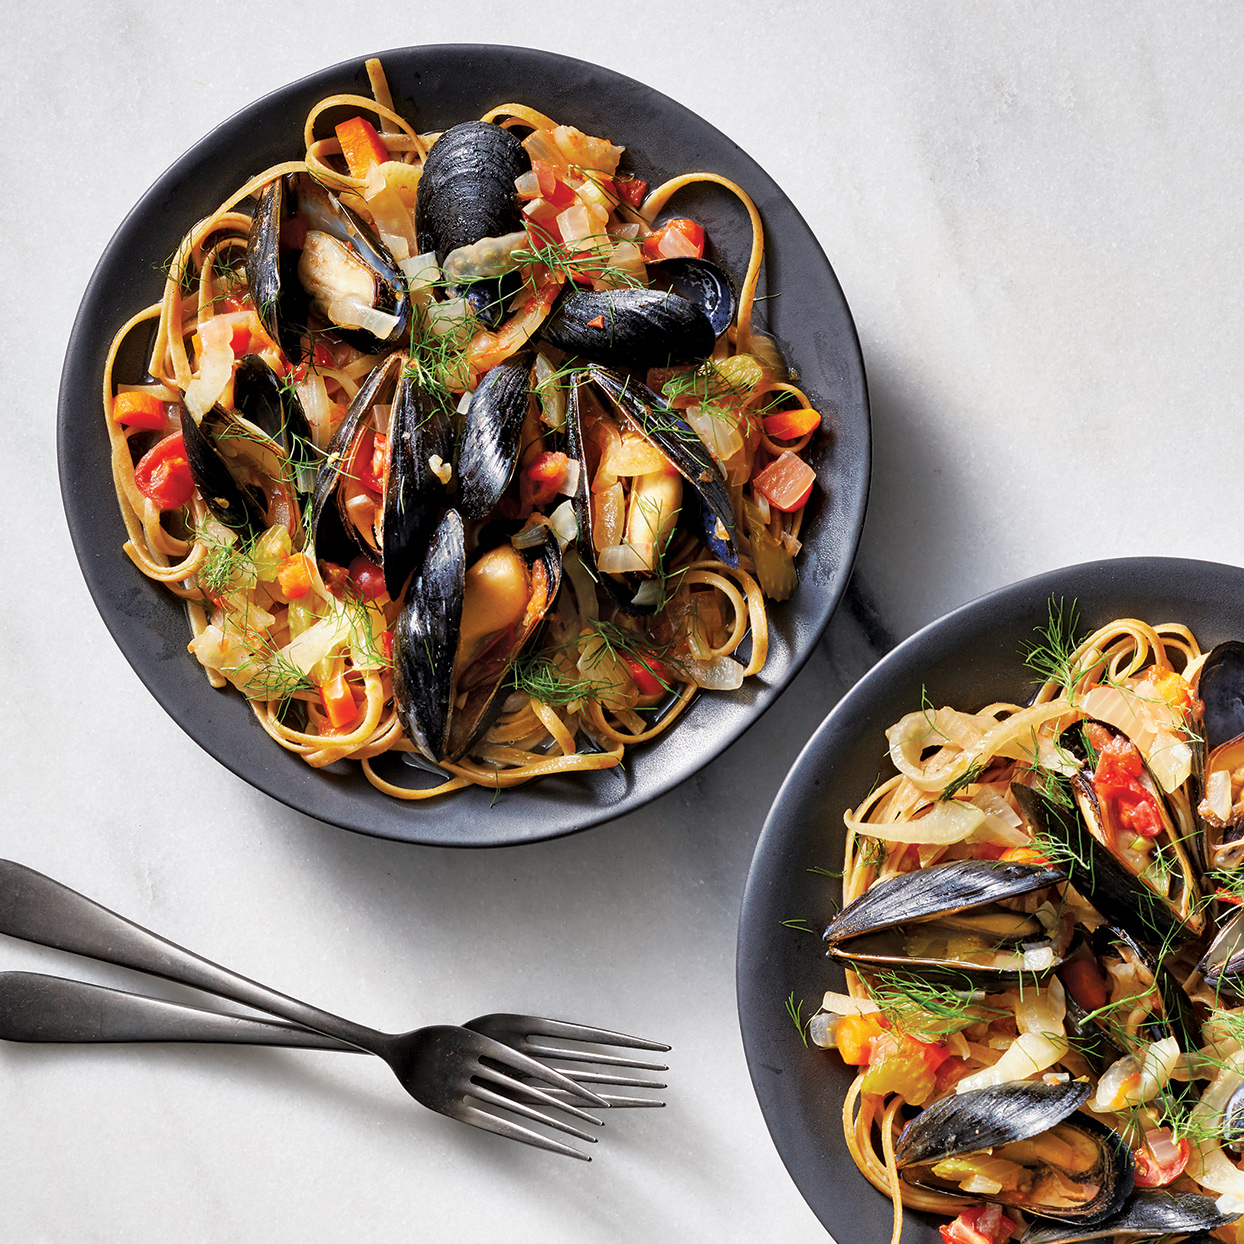 Cooking mussels in a slow cooker? You bet! It's the right tool for building the rich and spicy broth in which these shellfish cook to perfection. Use the freshest mussels you can find, and have the fishmonger clean them for you.